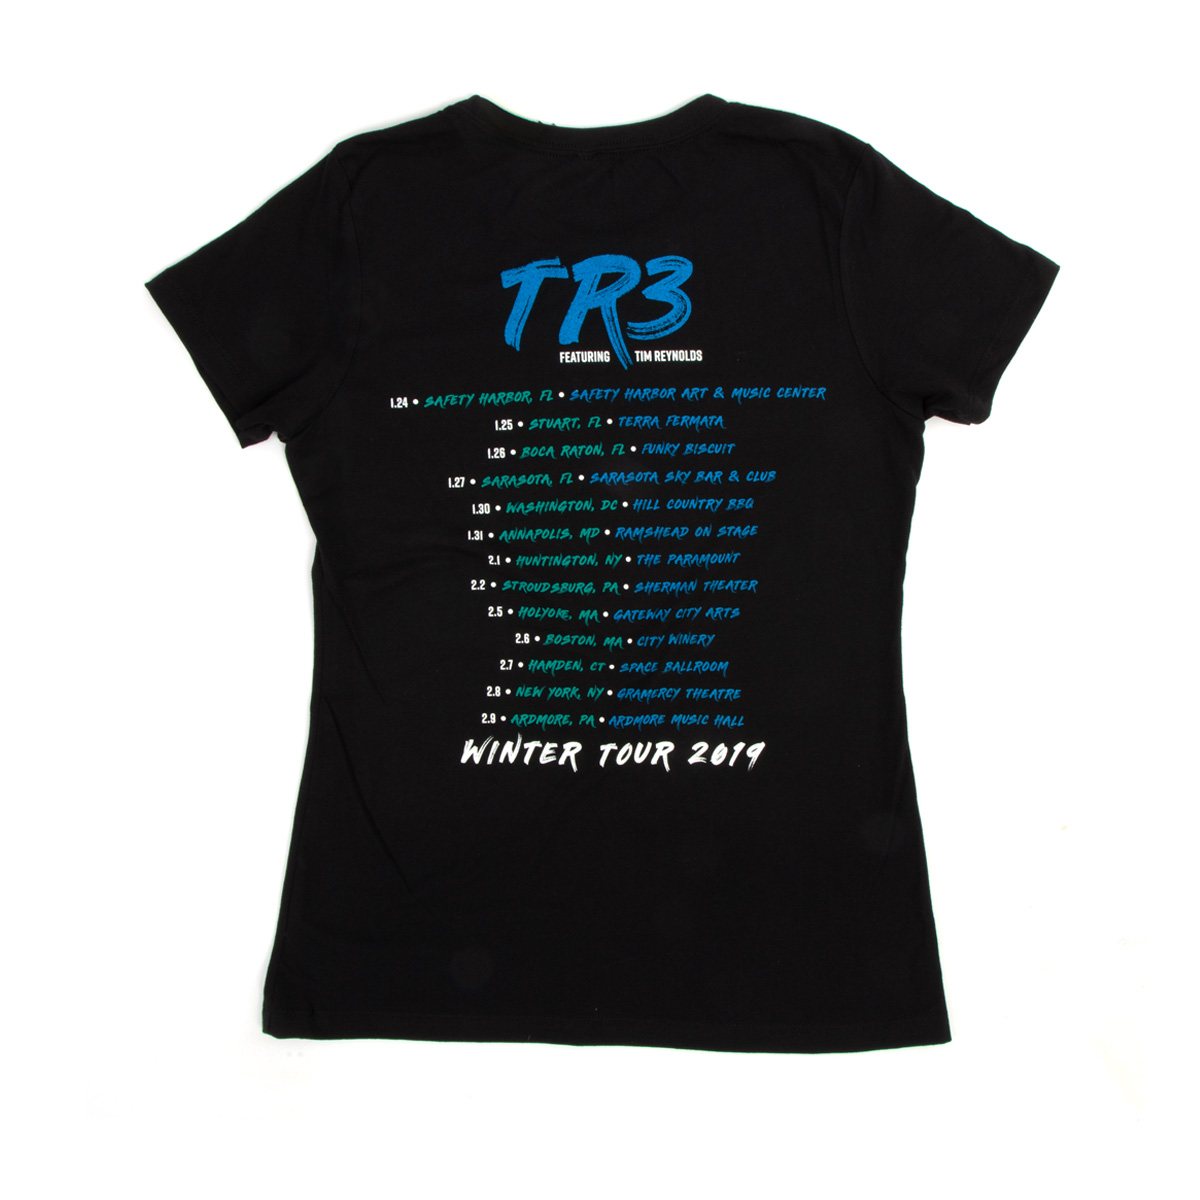 The Sea Versus the Mountain CD Release Women's Tour T-shirt